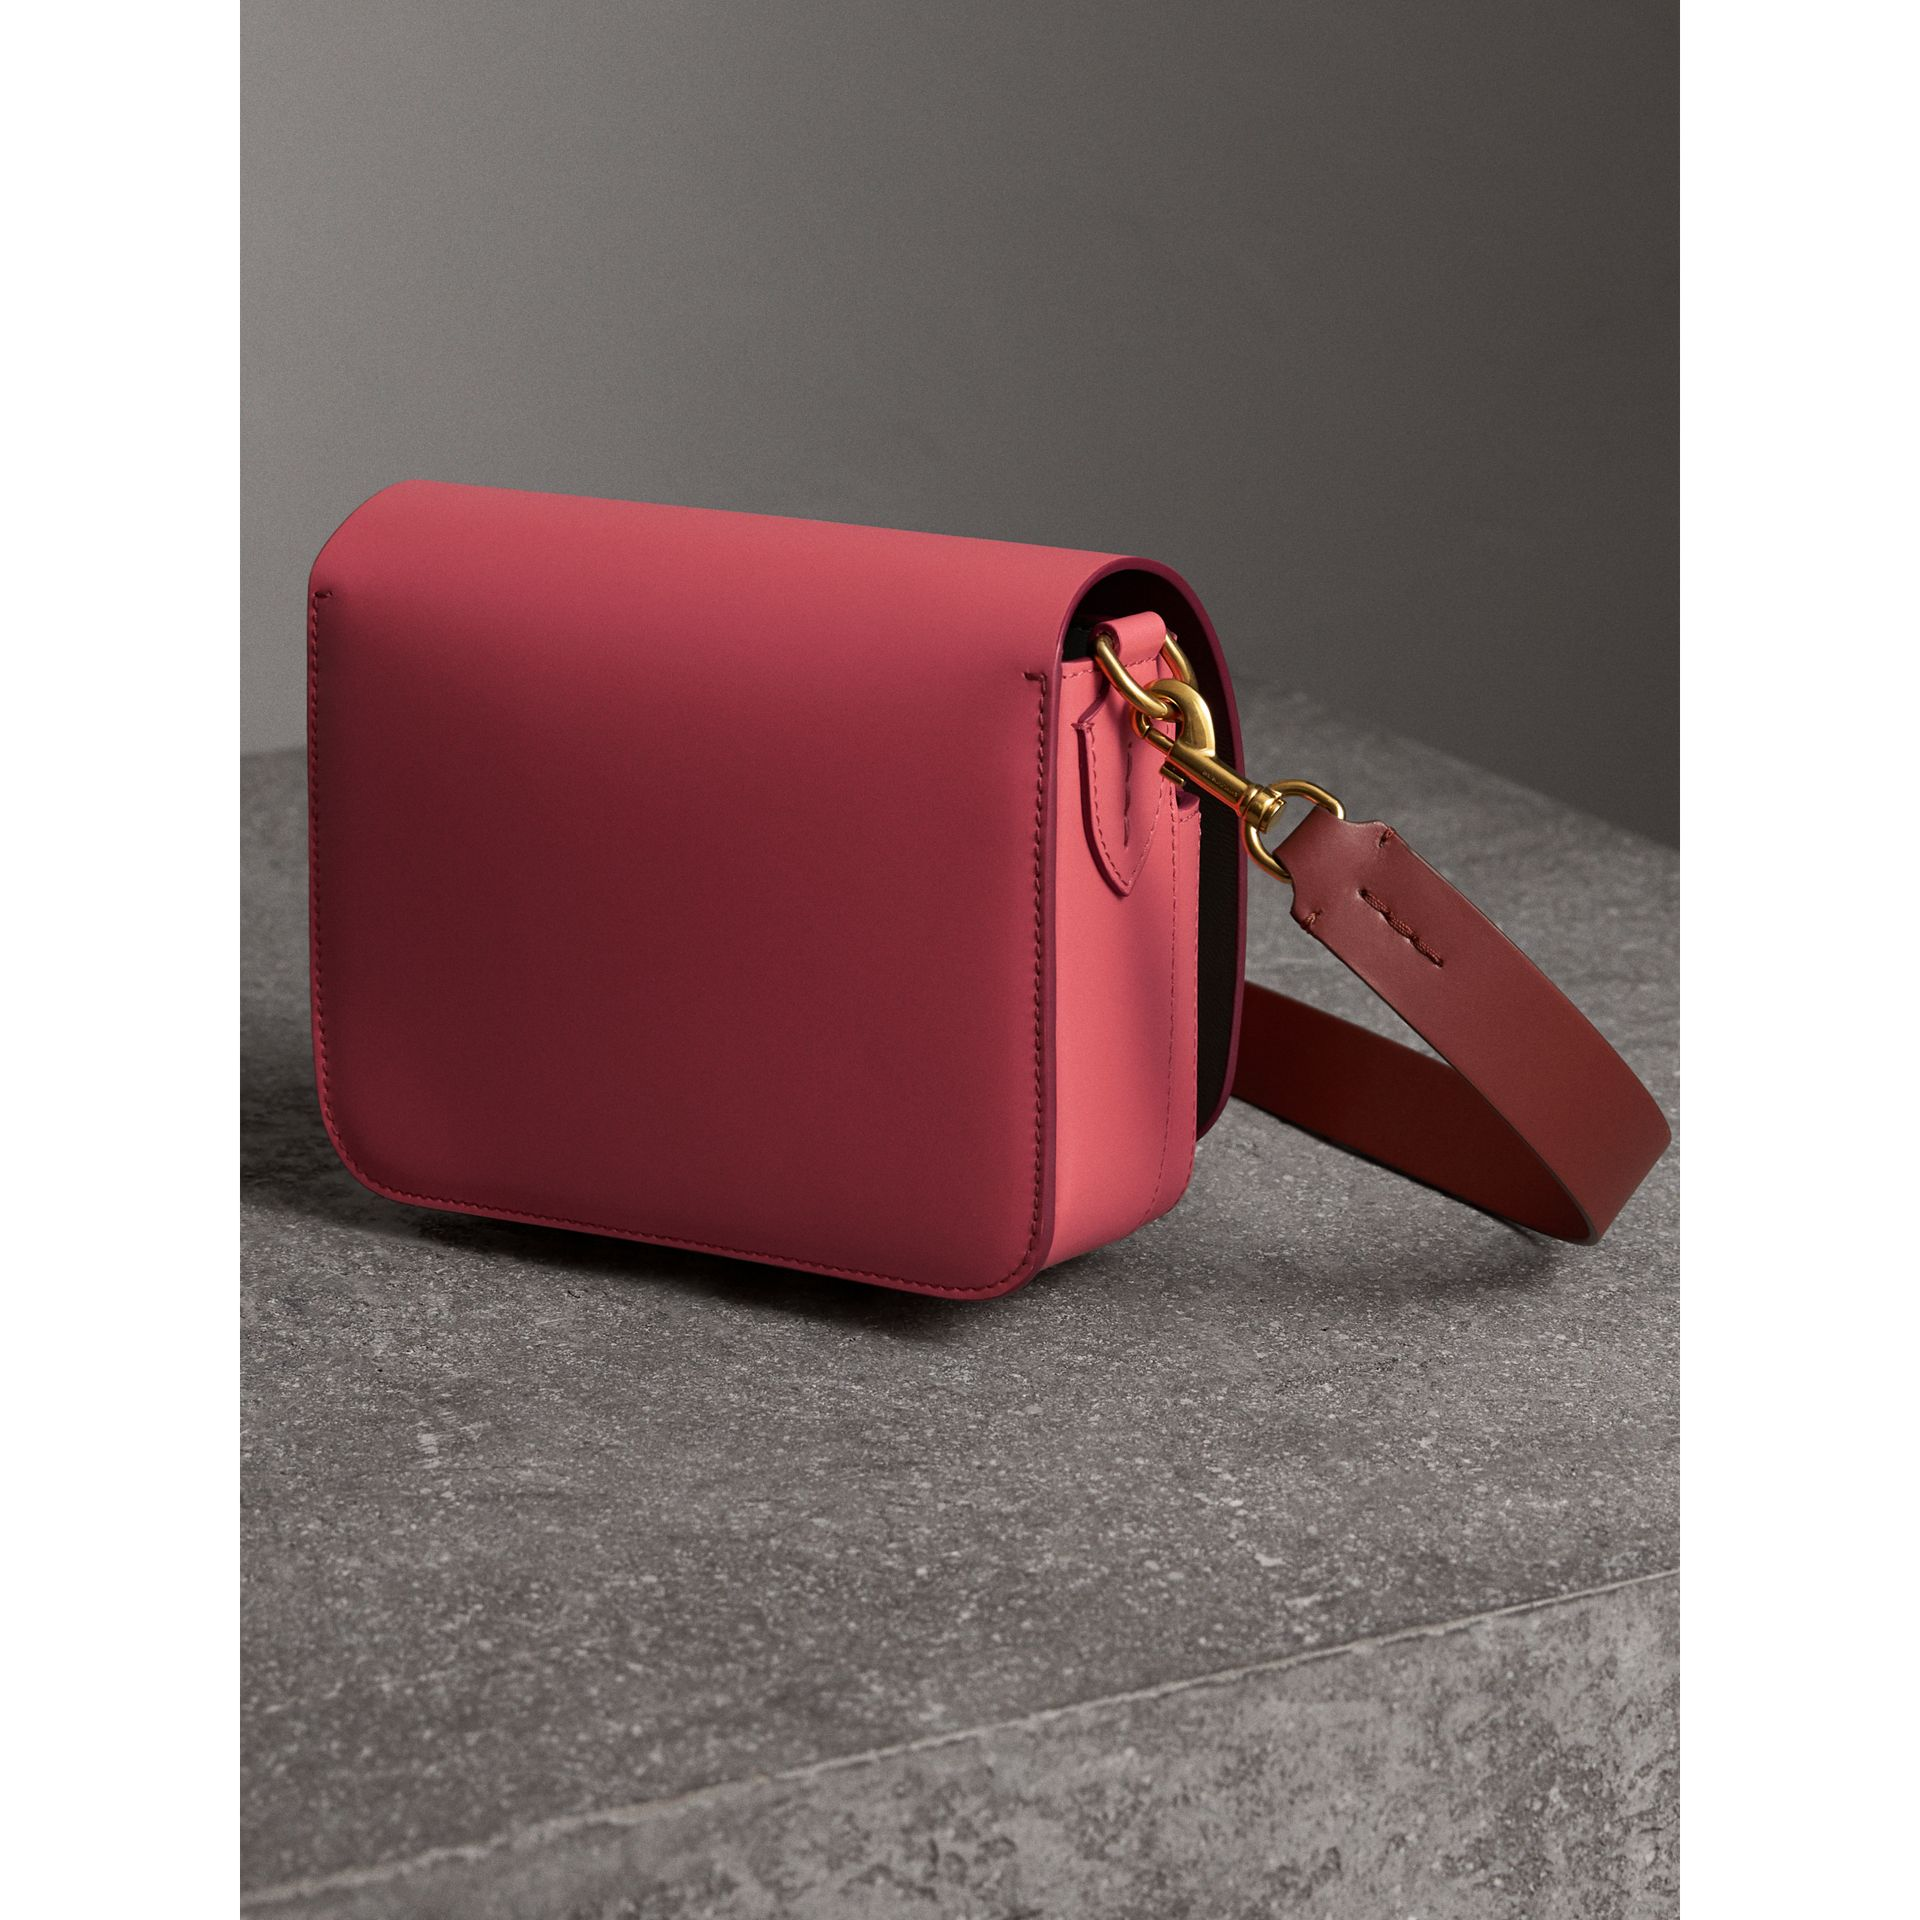 Sac The Satchel carré en cuir (Pivoine Vif) - Femme | Burberry - photo de la galerie 3